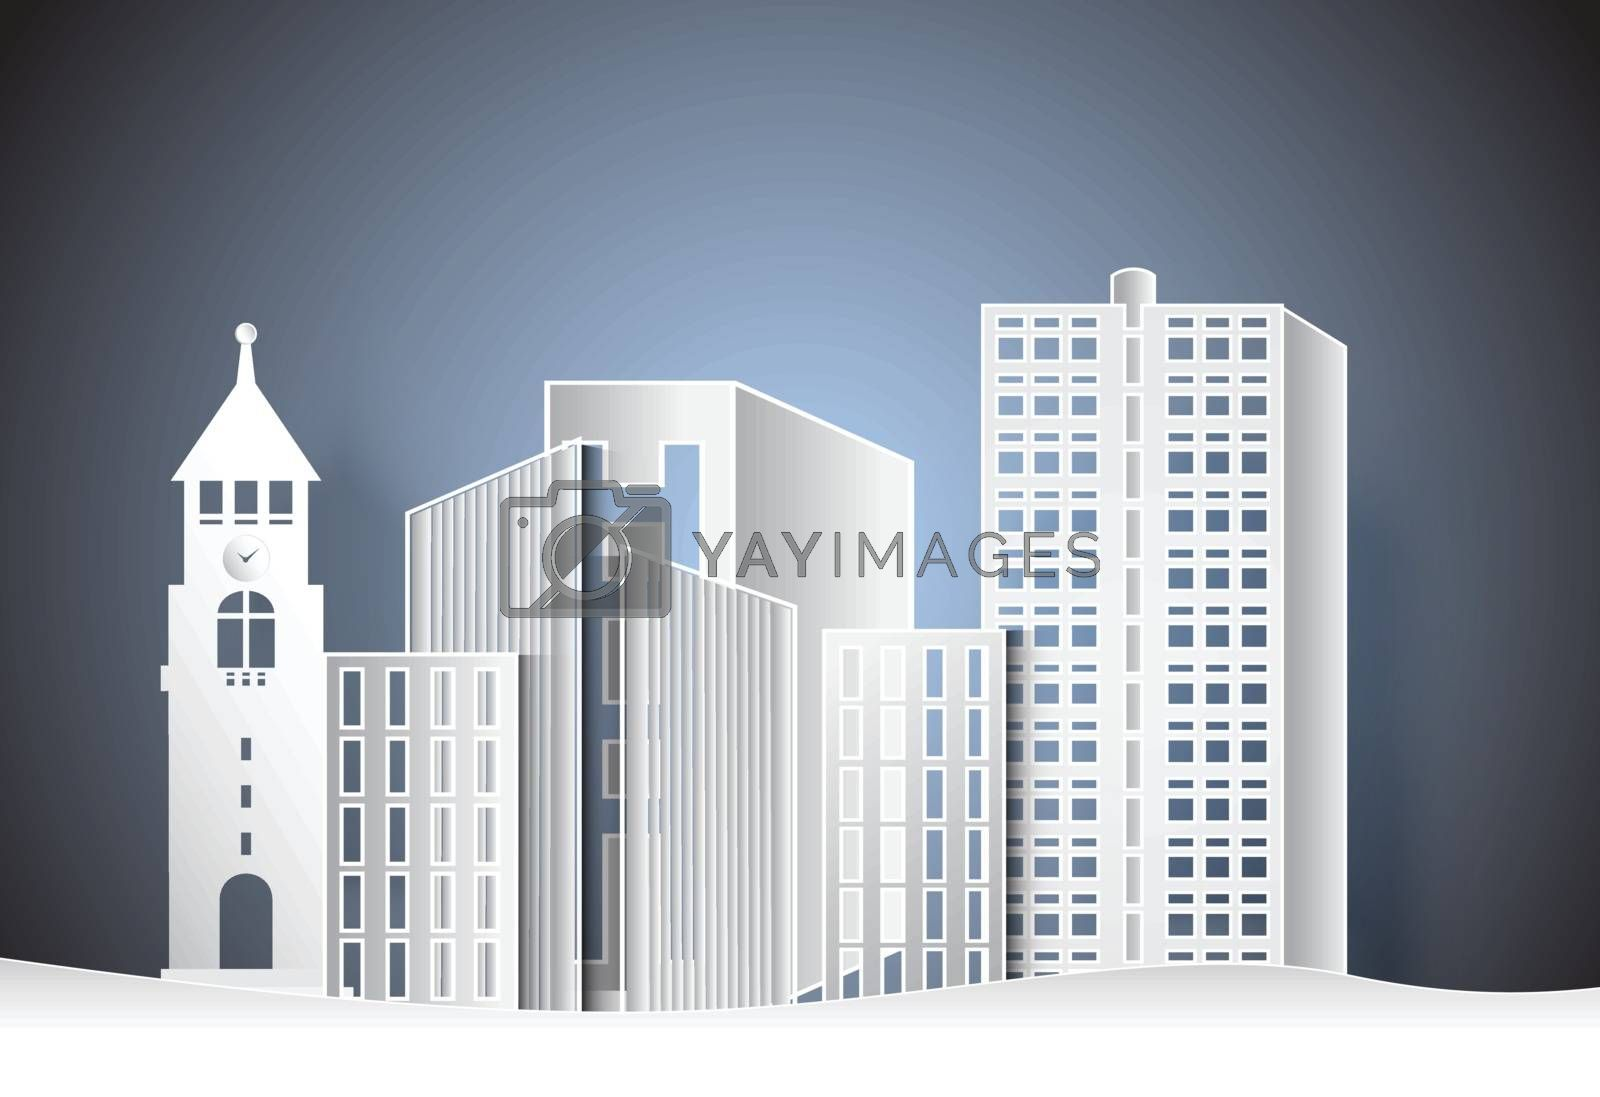 Building office in the city,  paper art style illustration.